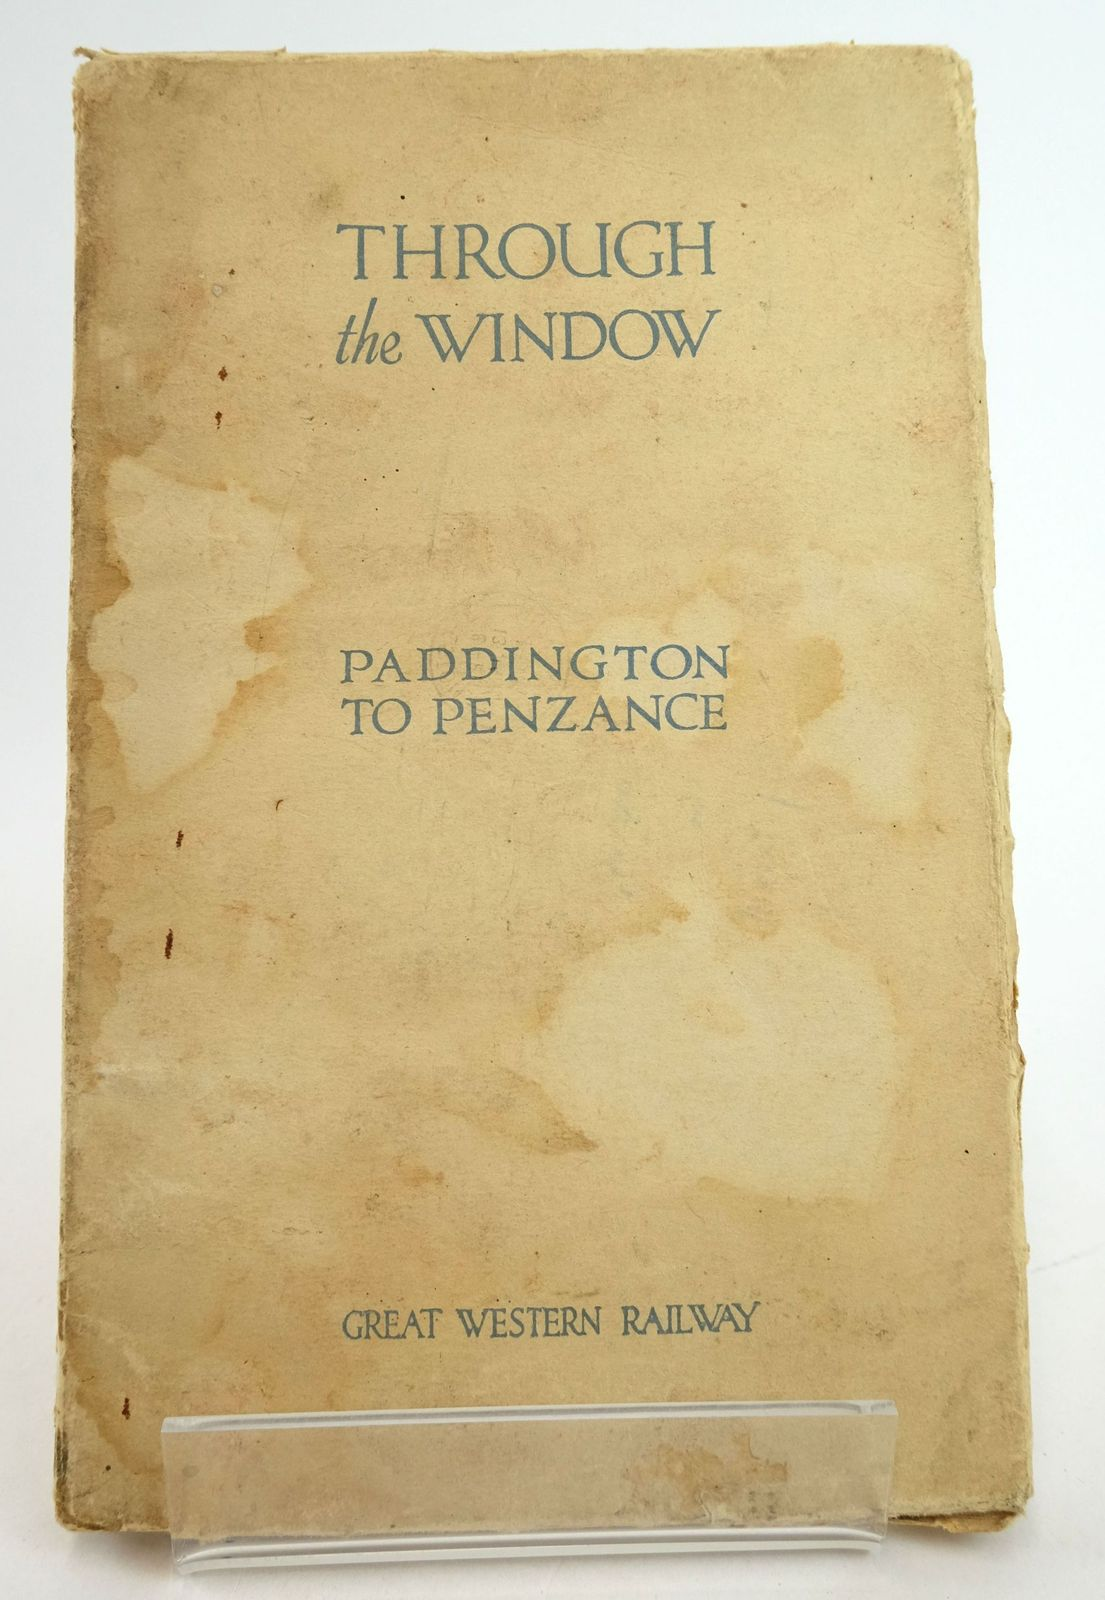 Photo of THROUGH THE WINDOW NUMBER ONE: PADDINGTON TO PENZANCE- Stock Number: 1819490